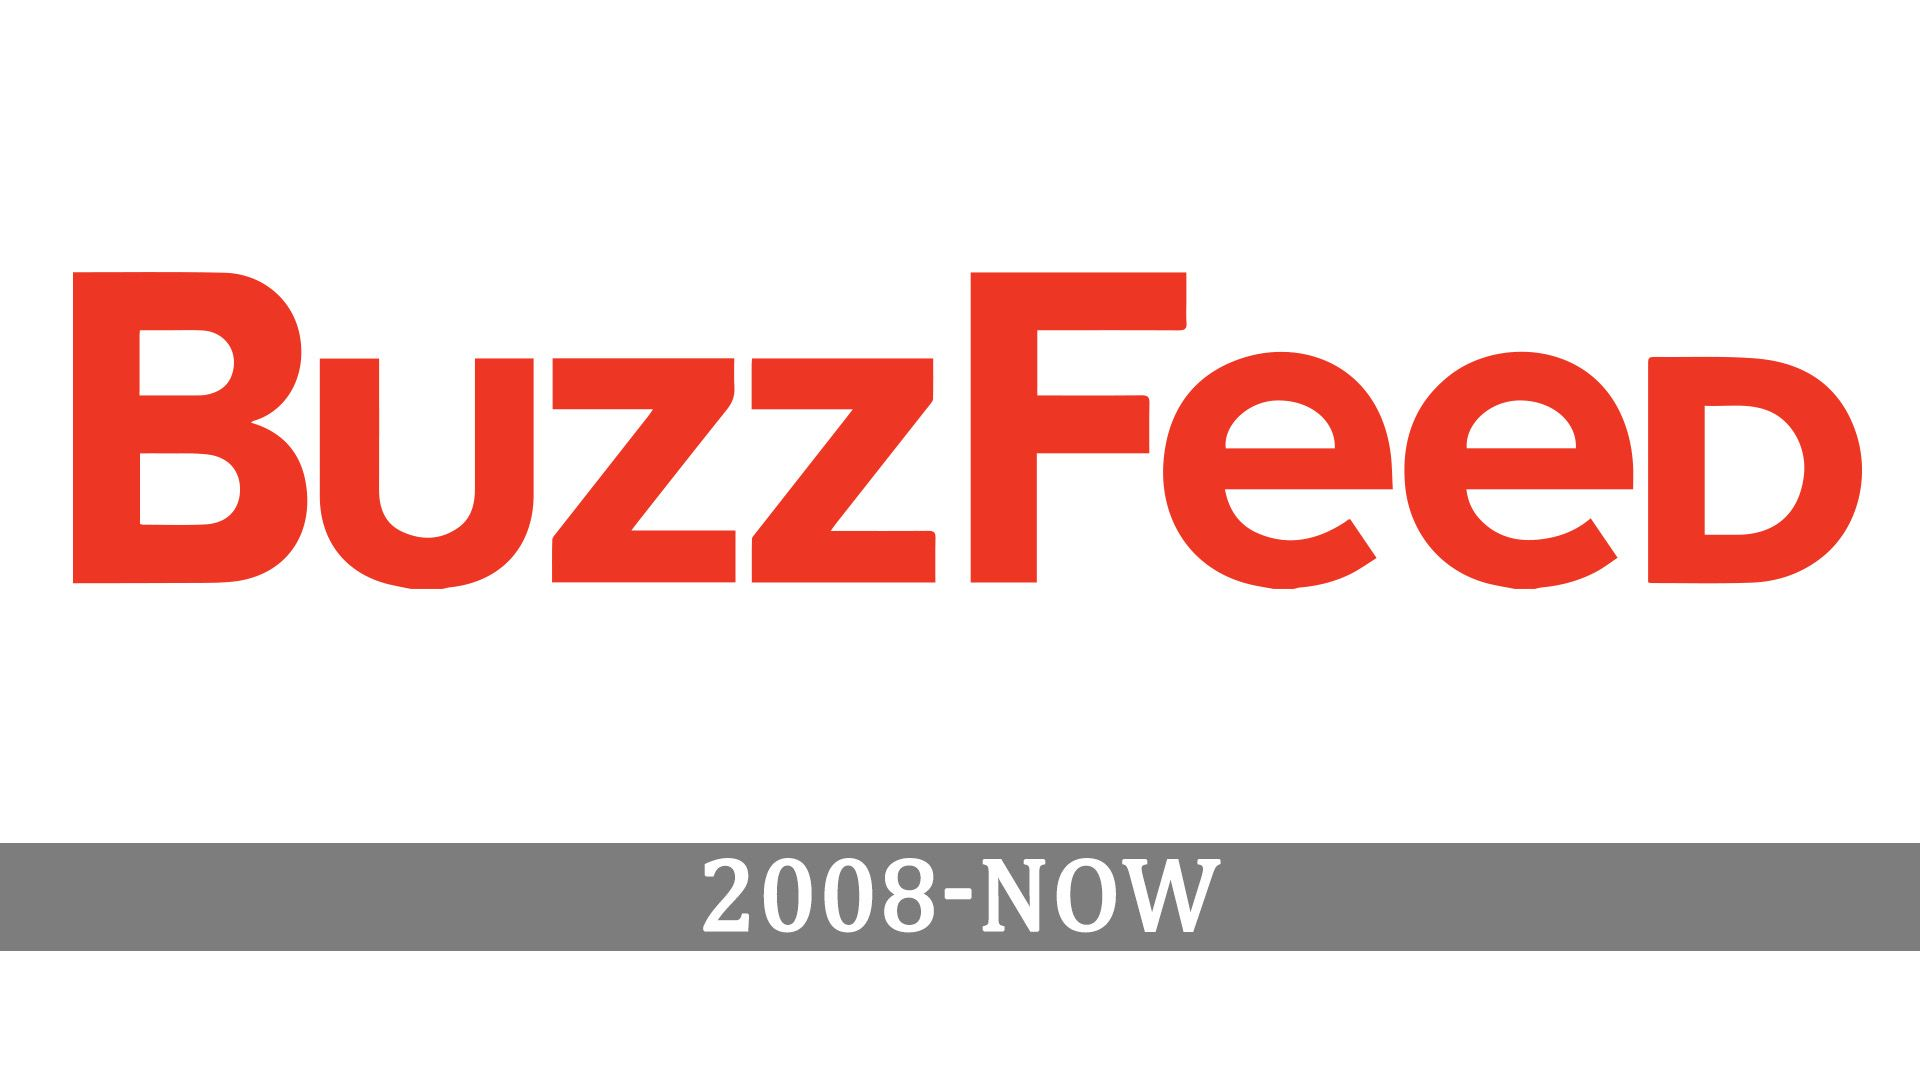 BuzzFeed Logo - BuzzFeed logo, symbol, meaning, History and Evolution